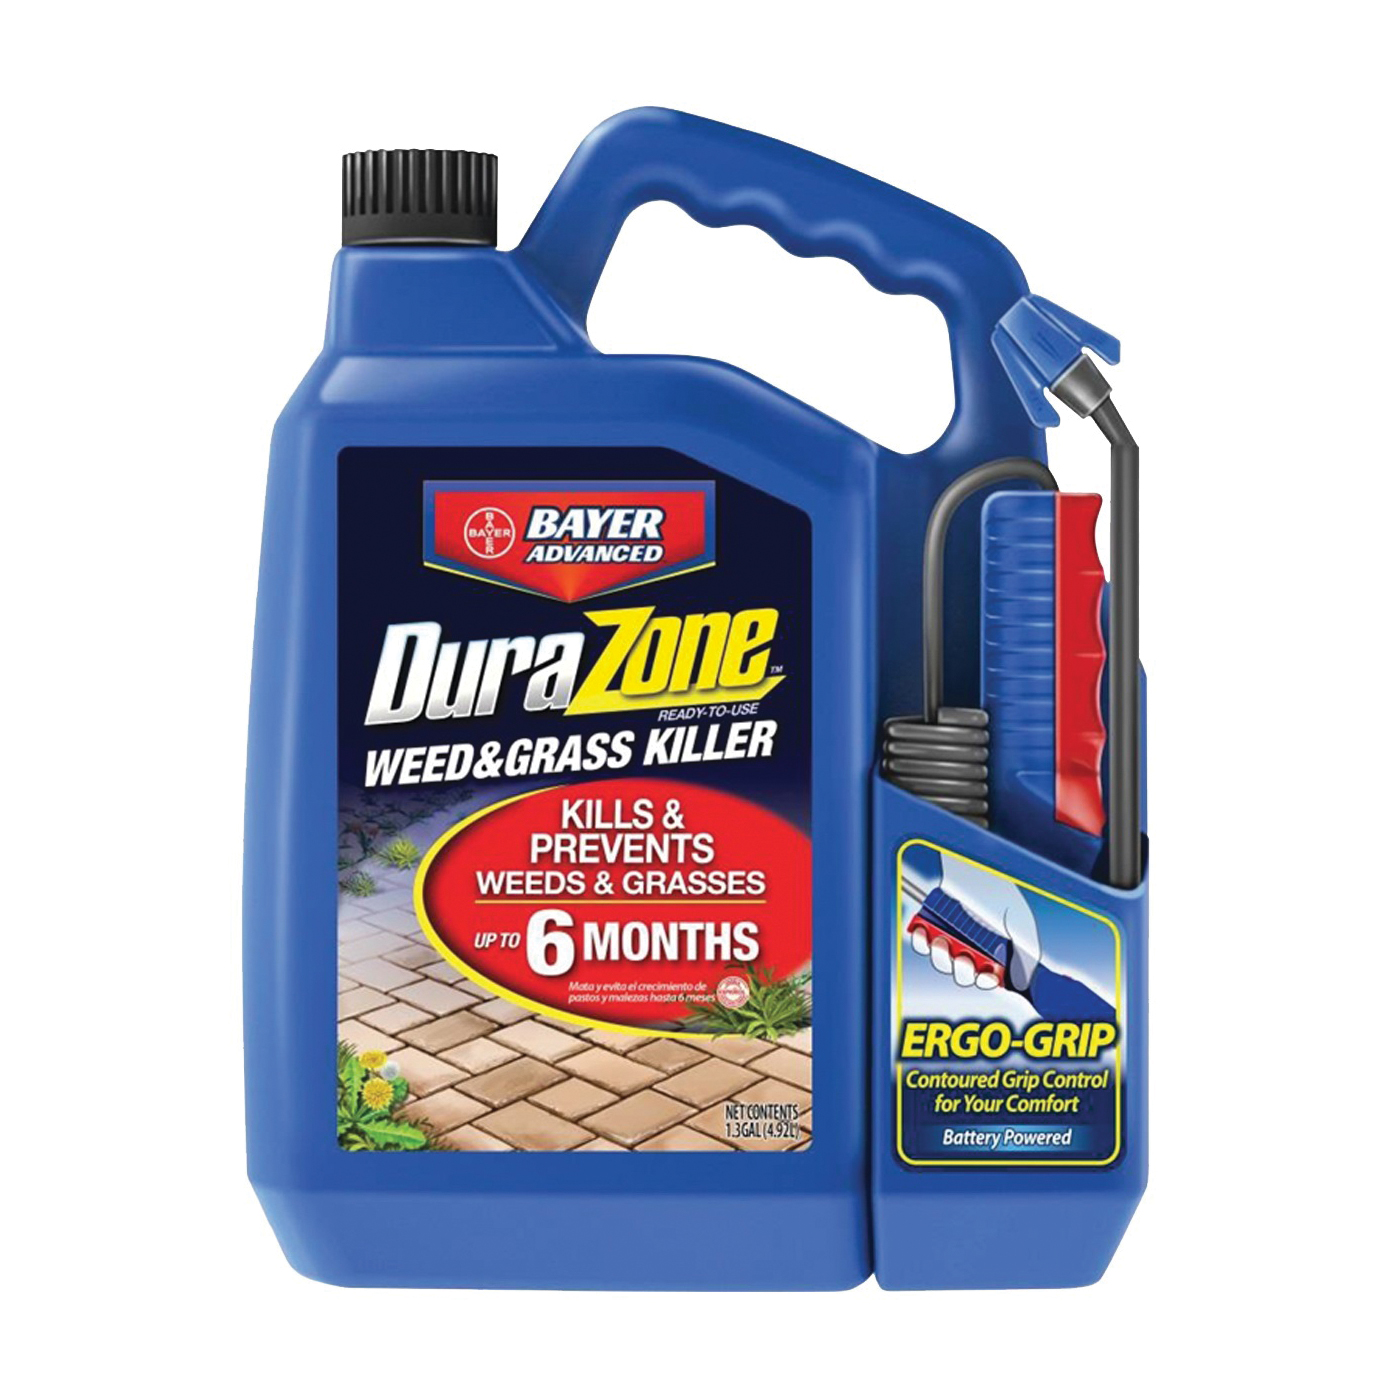 Picture of BioAdvanced DuraZone 704370A Weed and Grass Killer, Liquid, Light Beige/White, 1.3 gal Package, Bottle